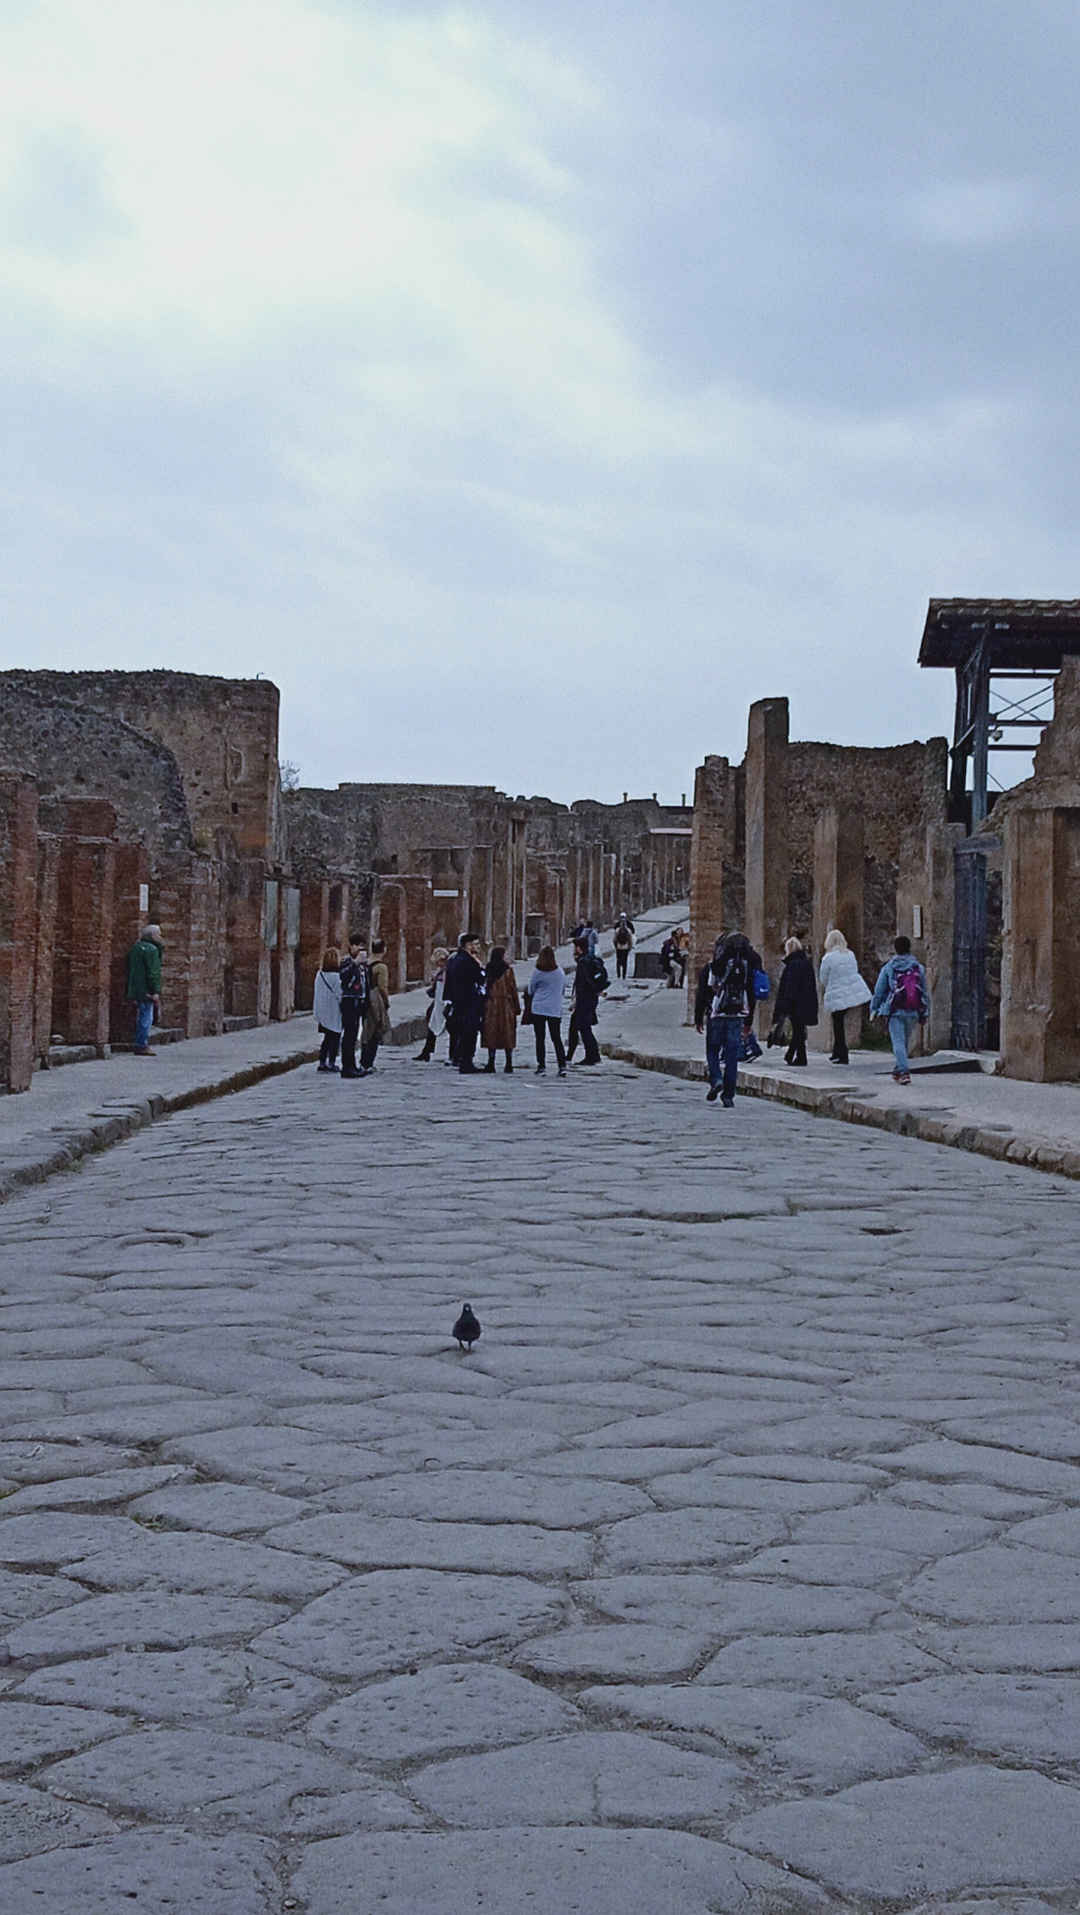 Go back in Time in the Lost City of Pompeii